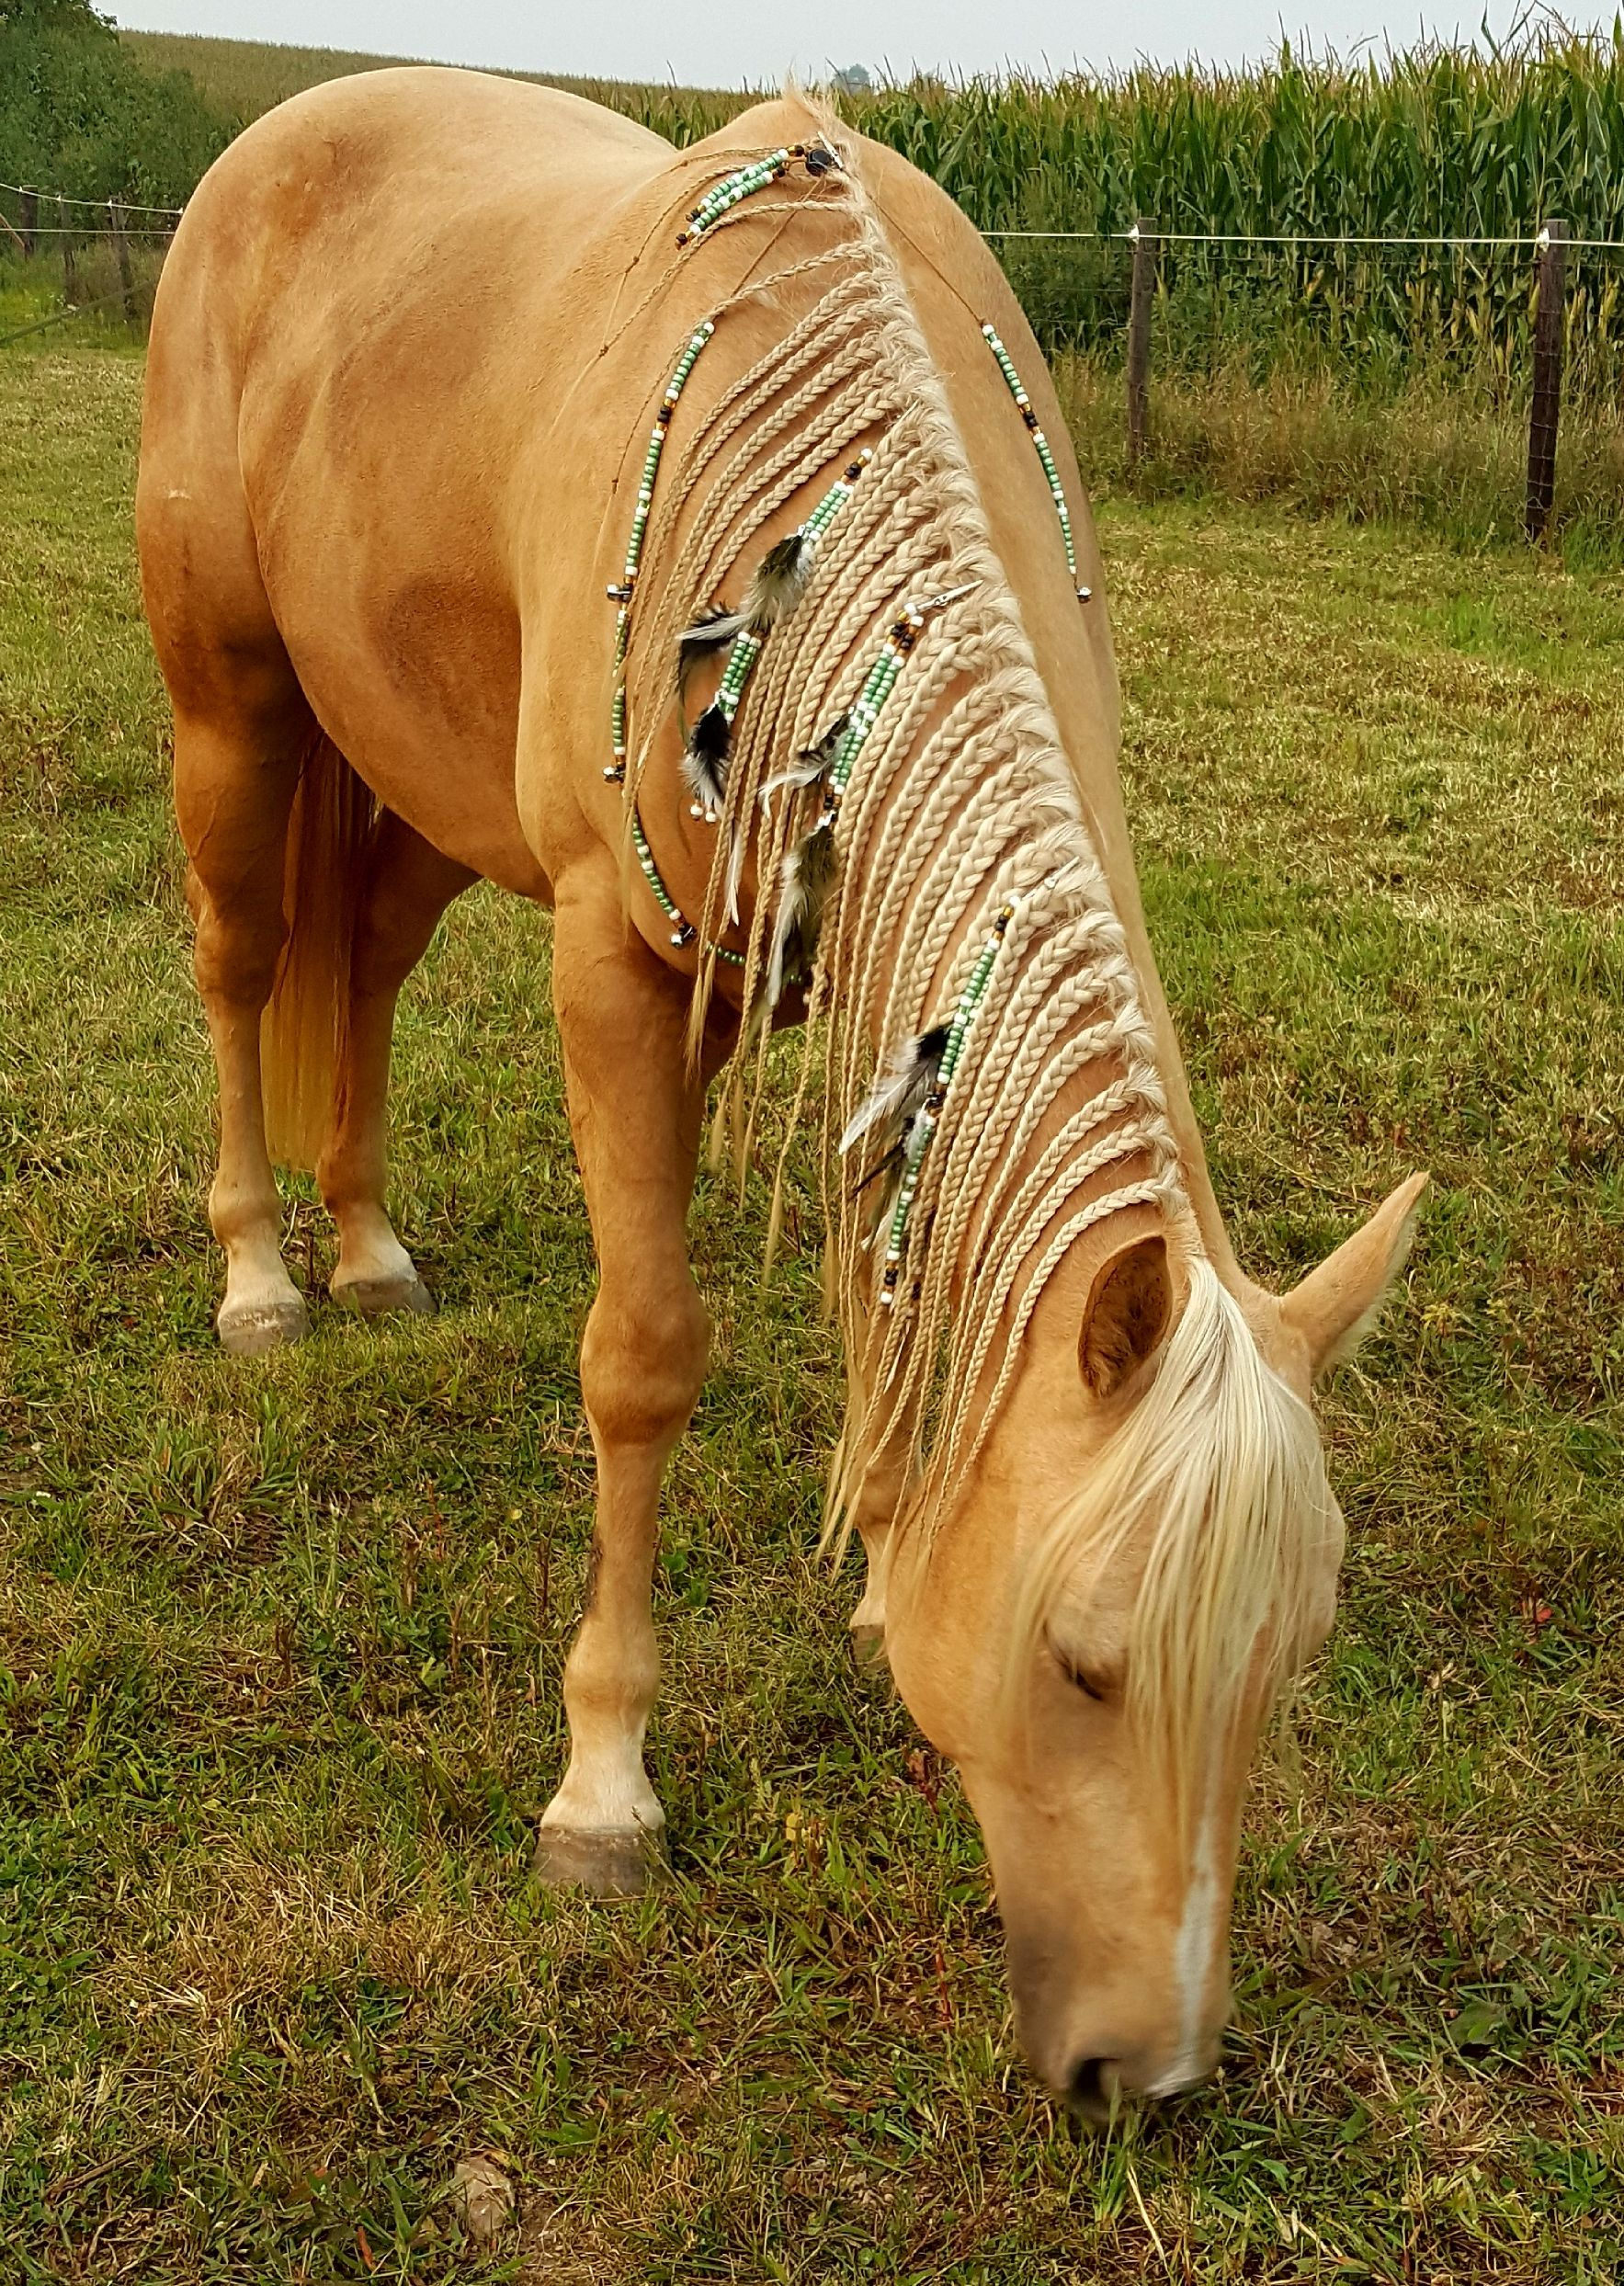 Add Rhythm To Your Ride Visit Rnb S Online Store At Www Rhythm N Beads Net With 100 Designs To Choose From As Well Horse Braiding Horse Hair Horse Mane